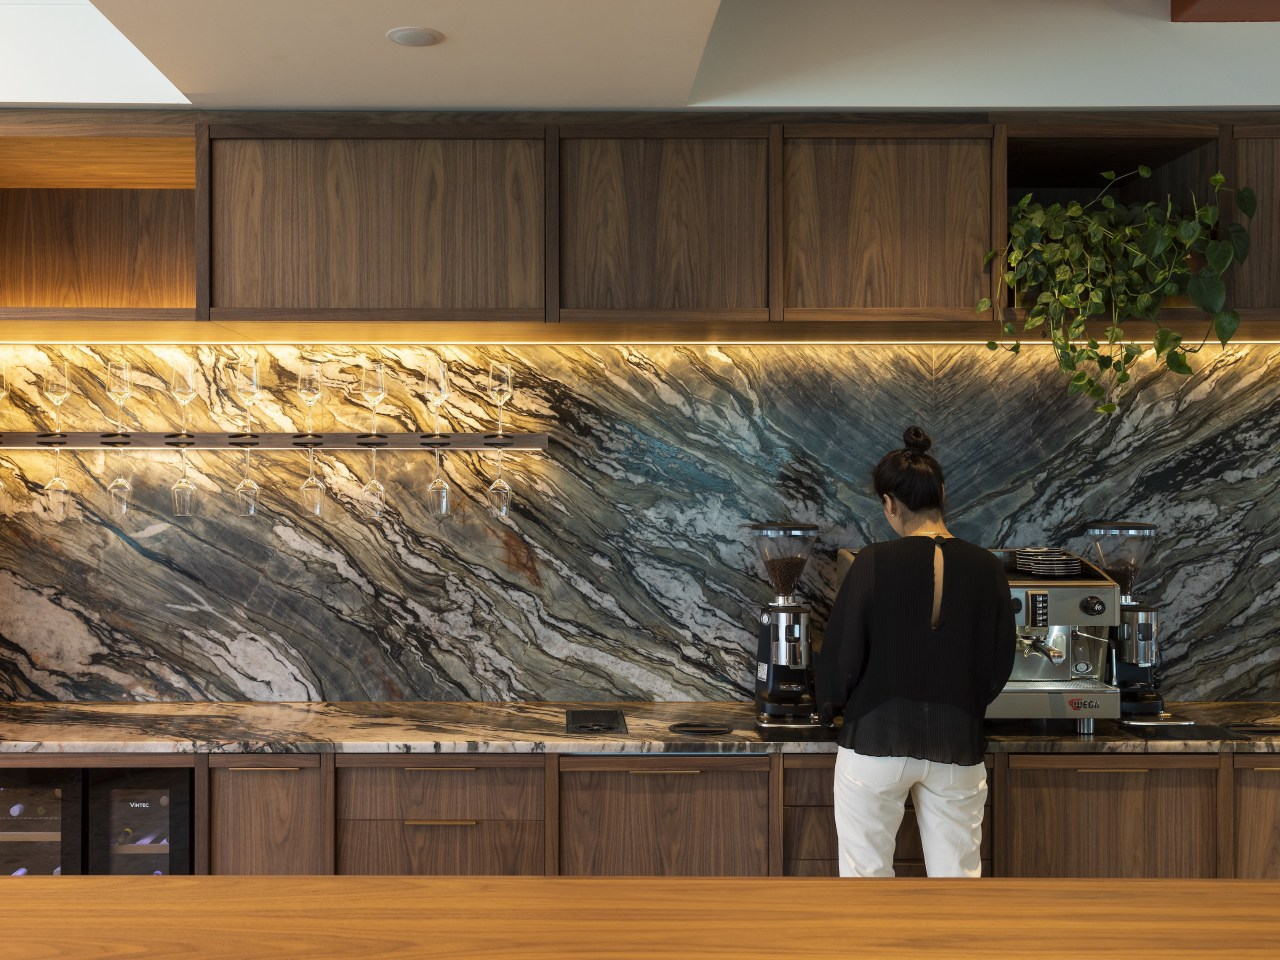 The studio's full open kitchen servery with feature